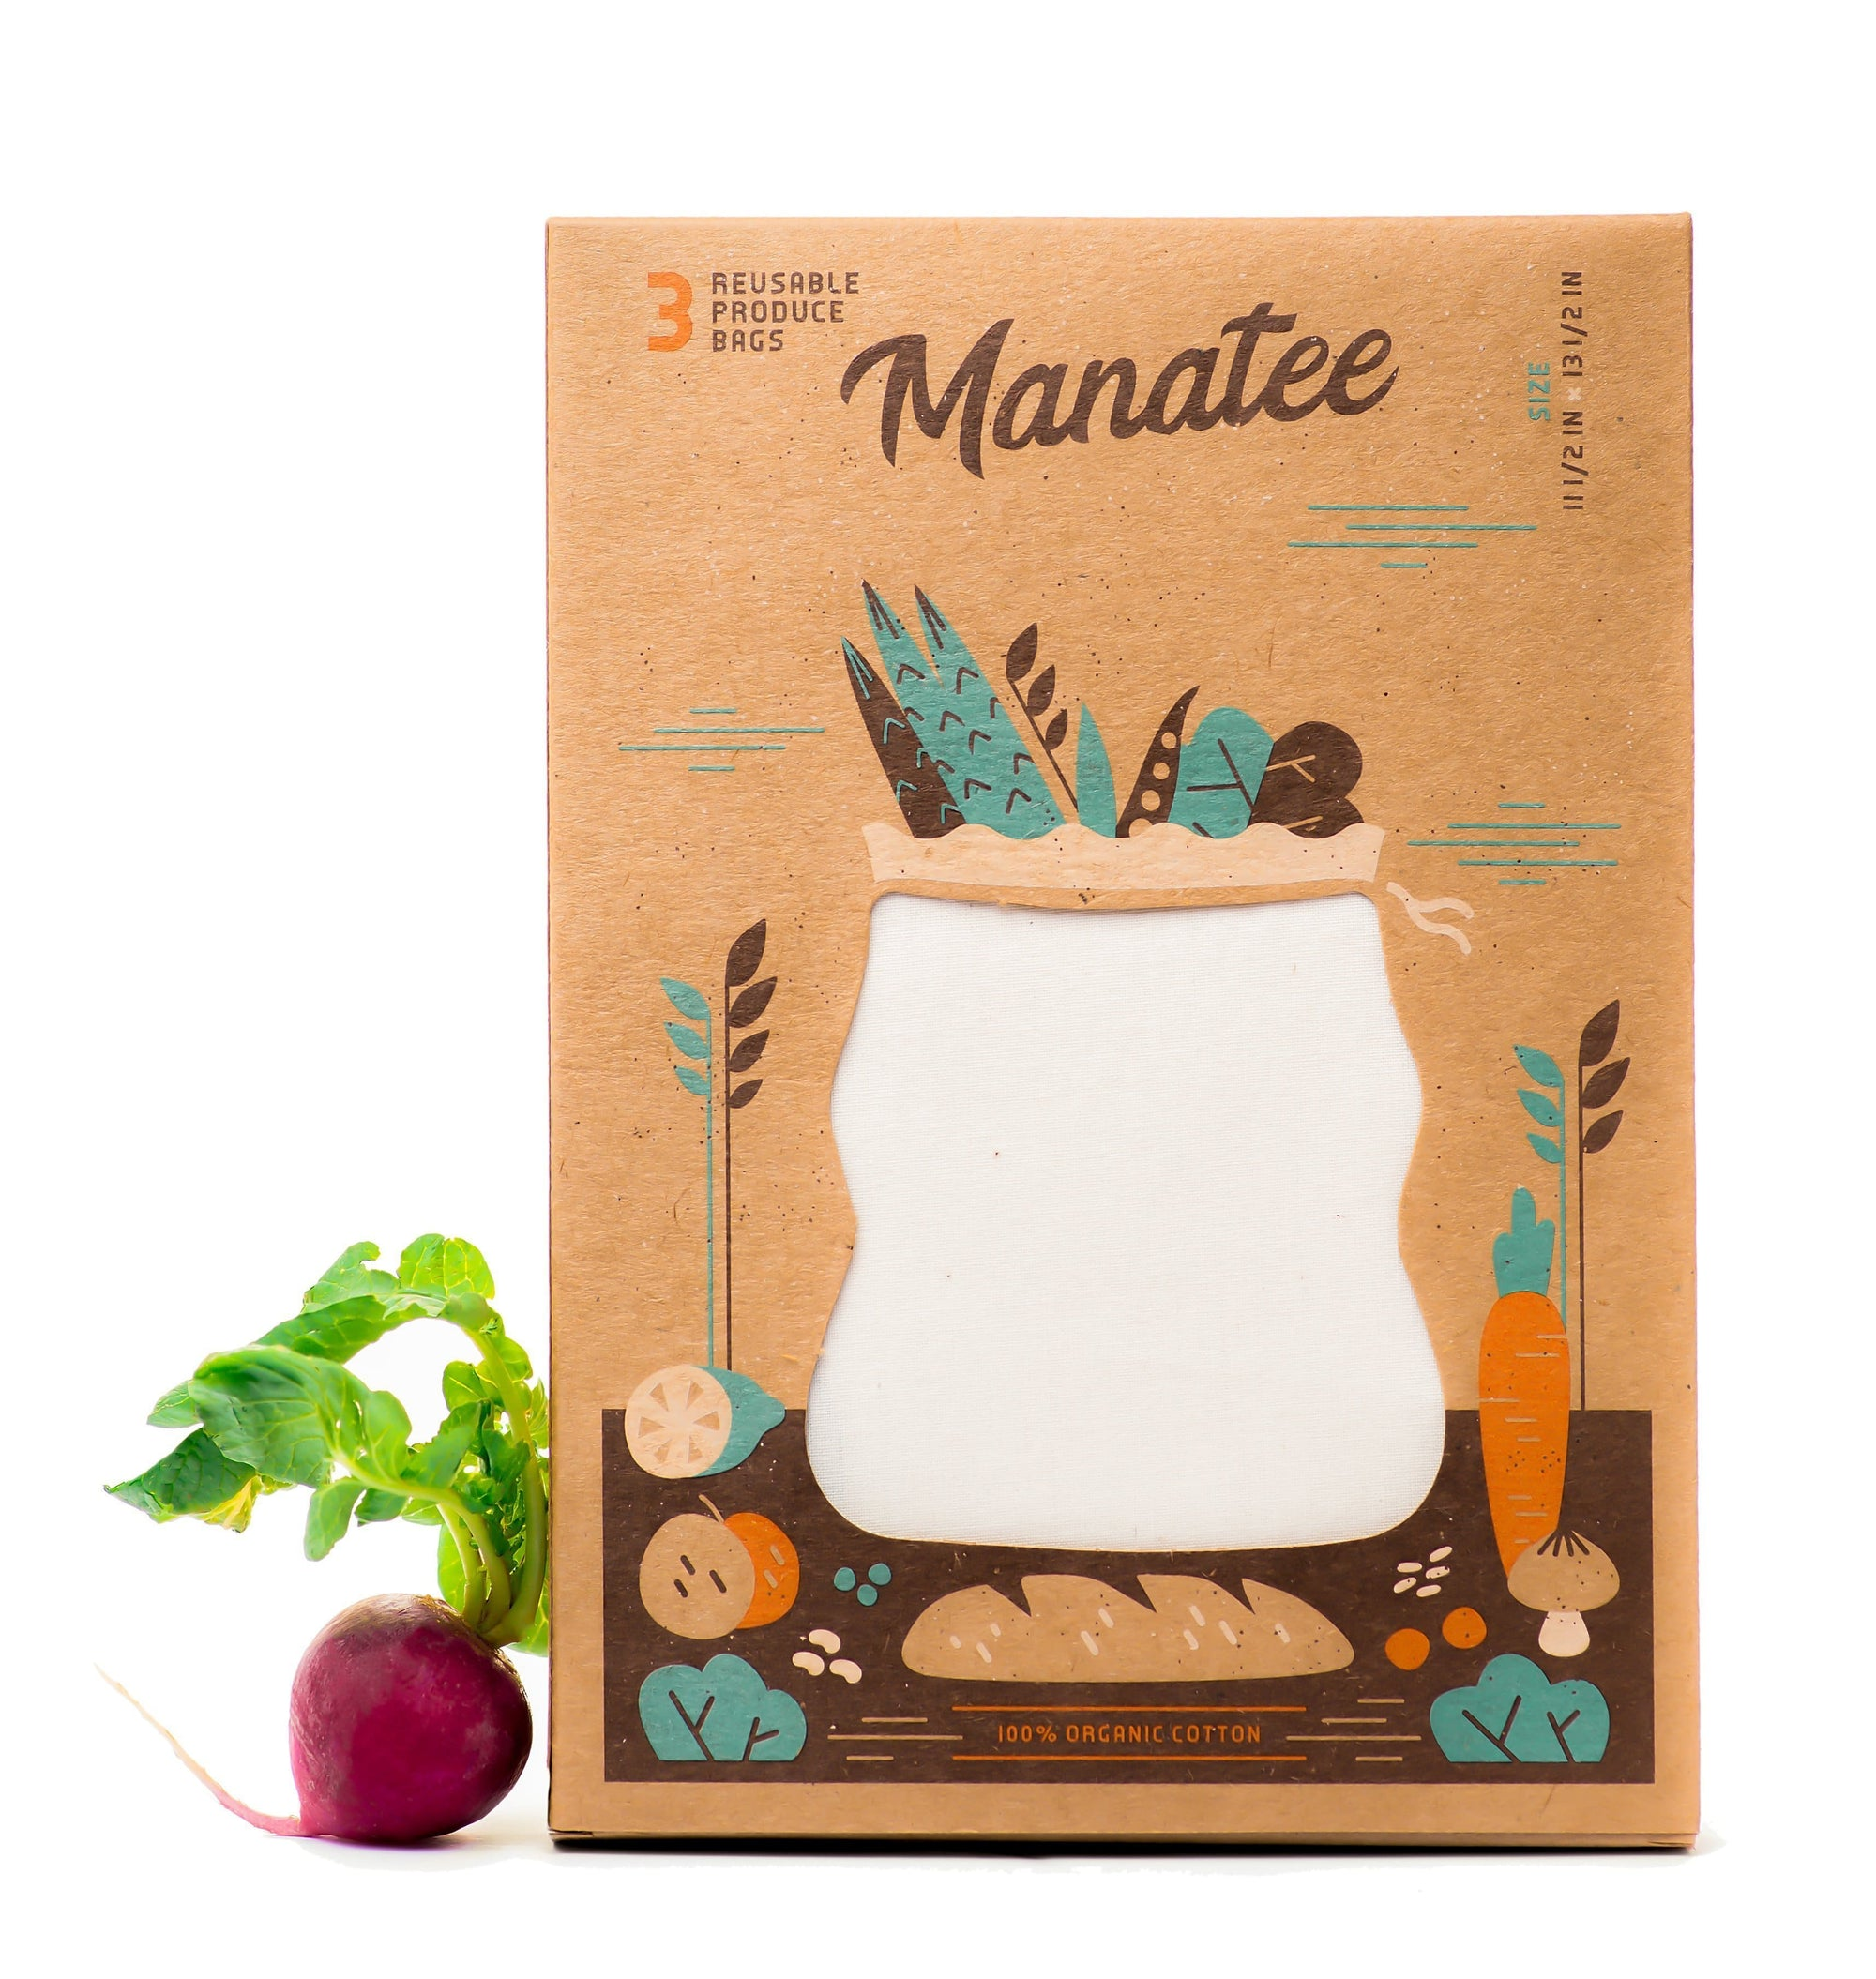 Manatee Bags - Set of 3 Organic Cotton Produce Bags - Naturally Anti-Microbial Hypoallergenic Sustainable Eco-Friendly Cork